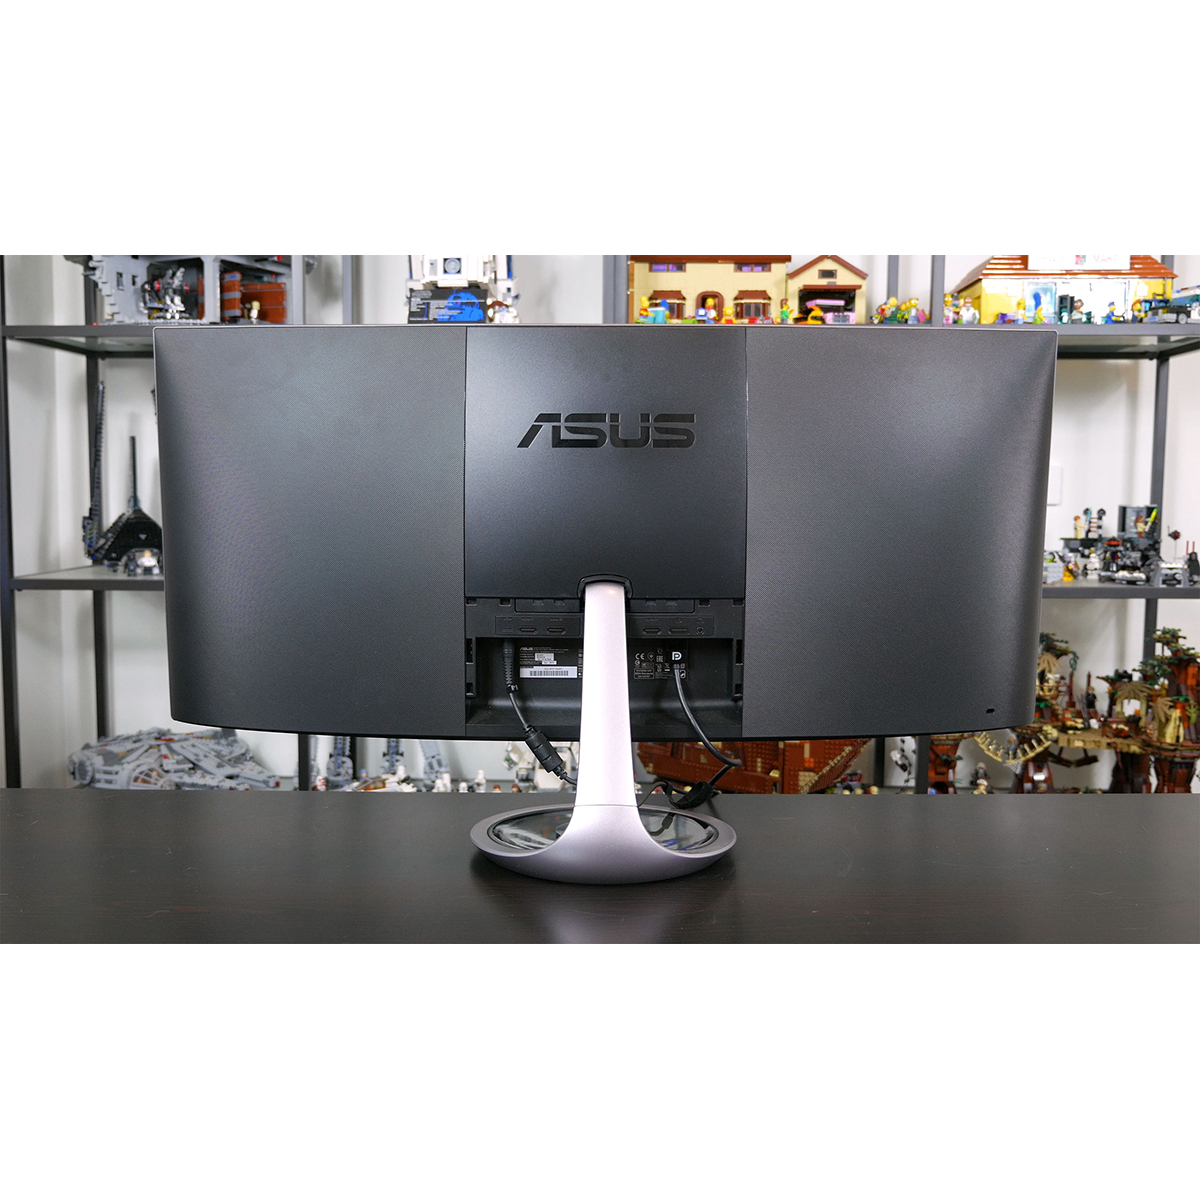 Asus Designo Curved MX34VQ 34 Inch Ultra-wide Curved (1800R) 100